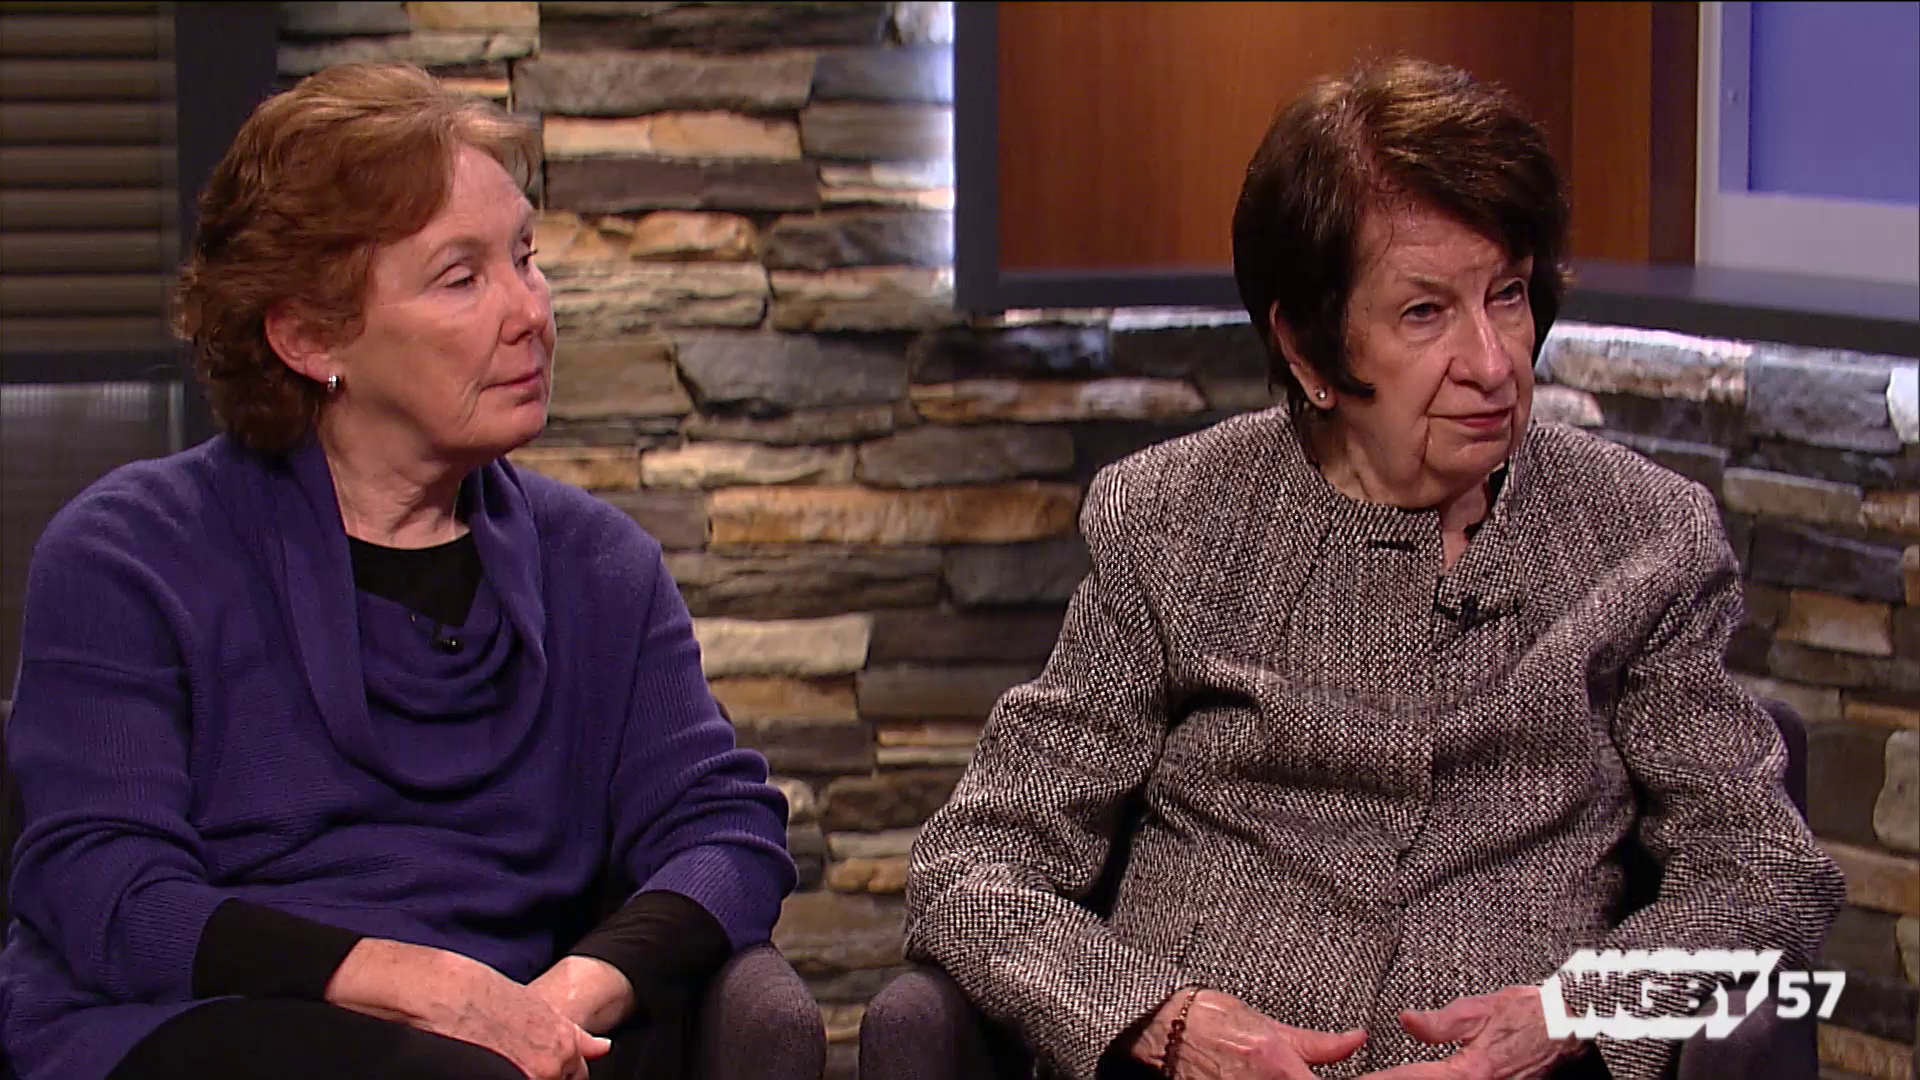 A new Springfield Early Childhood Education center will open in the Old Hill neighborhood later in 2018. Head Start's Janis Santos and the Davis Foundation's Mary Walachy discuss the importance of early childhood education on child development and how the new facility will positively impact area children and families.